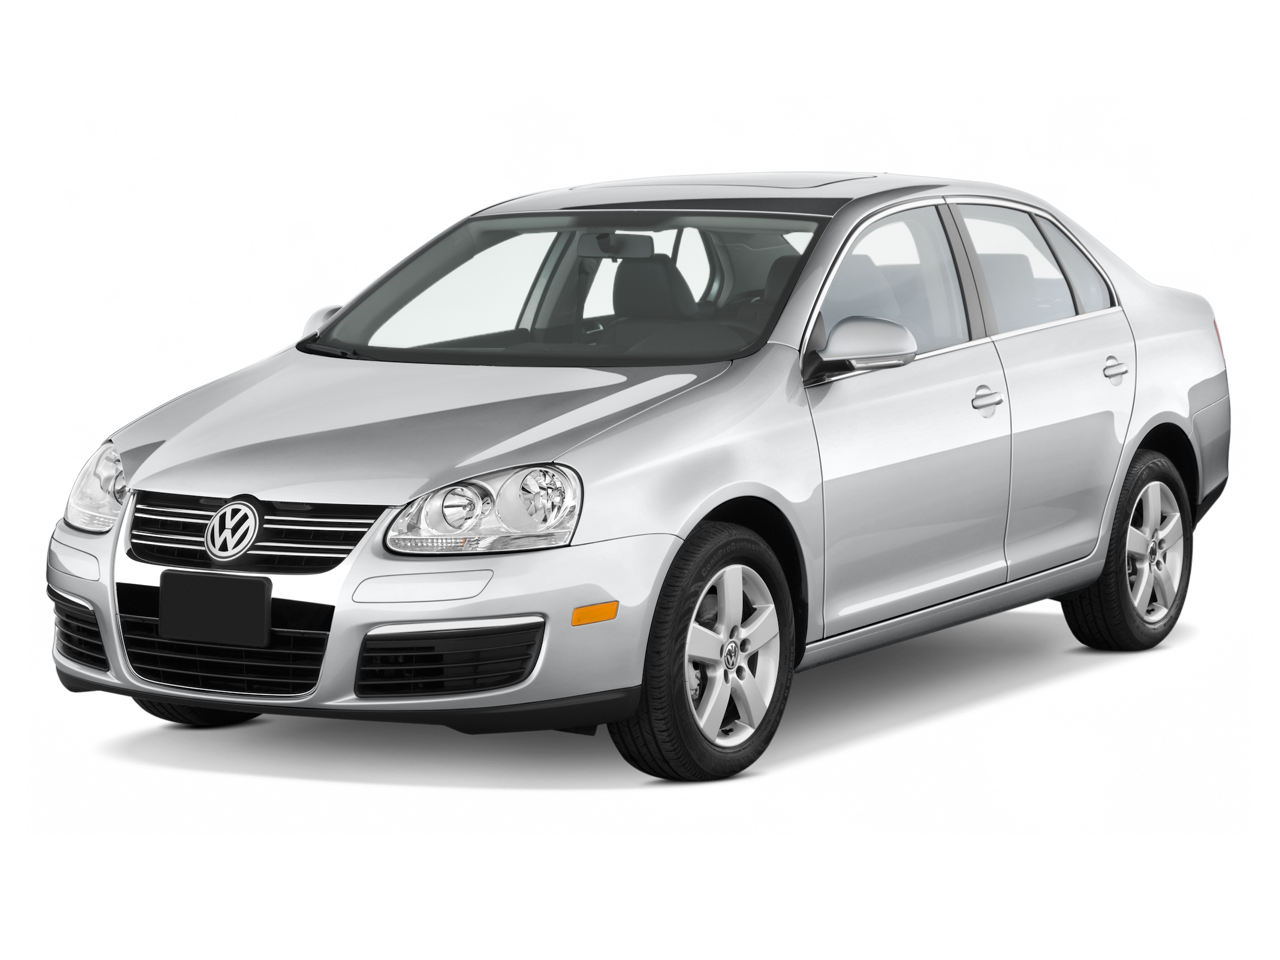 2009 volkswagen jetta tdi volkswagen fuel efficient sedan review automobile magazine. Black Bedroom Furniture Sets. Home Design Ideas